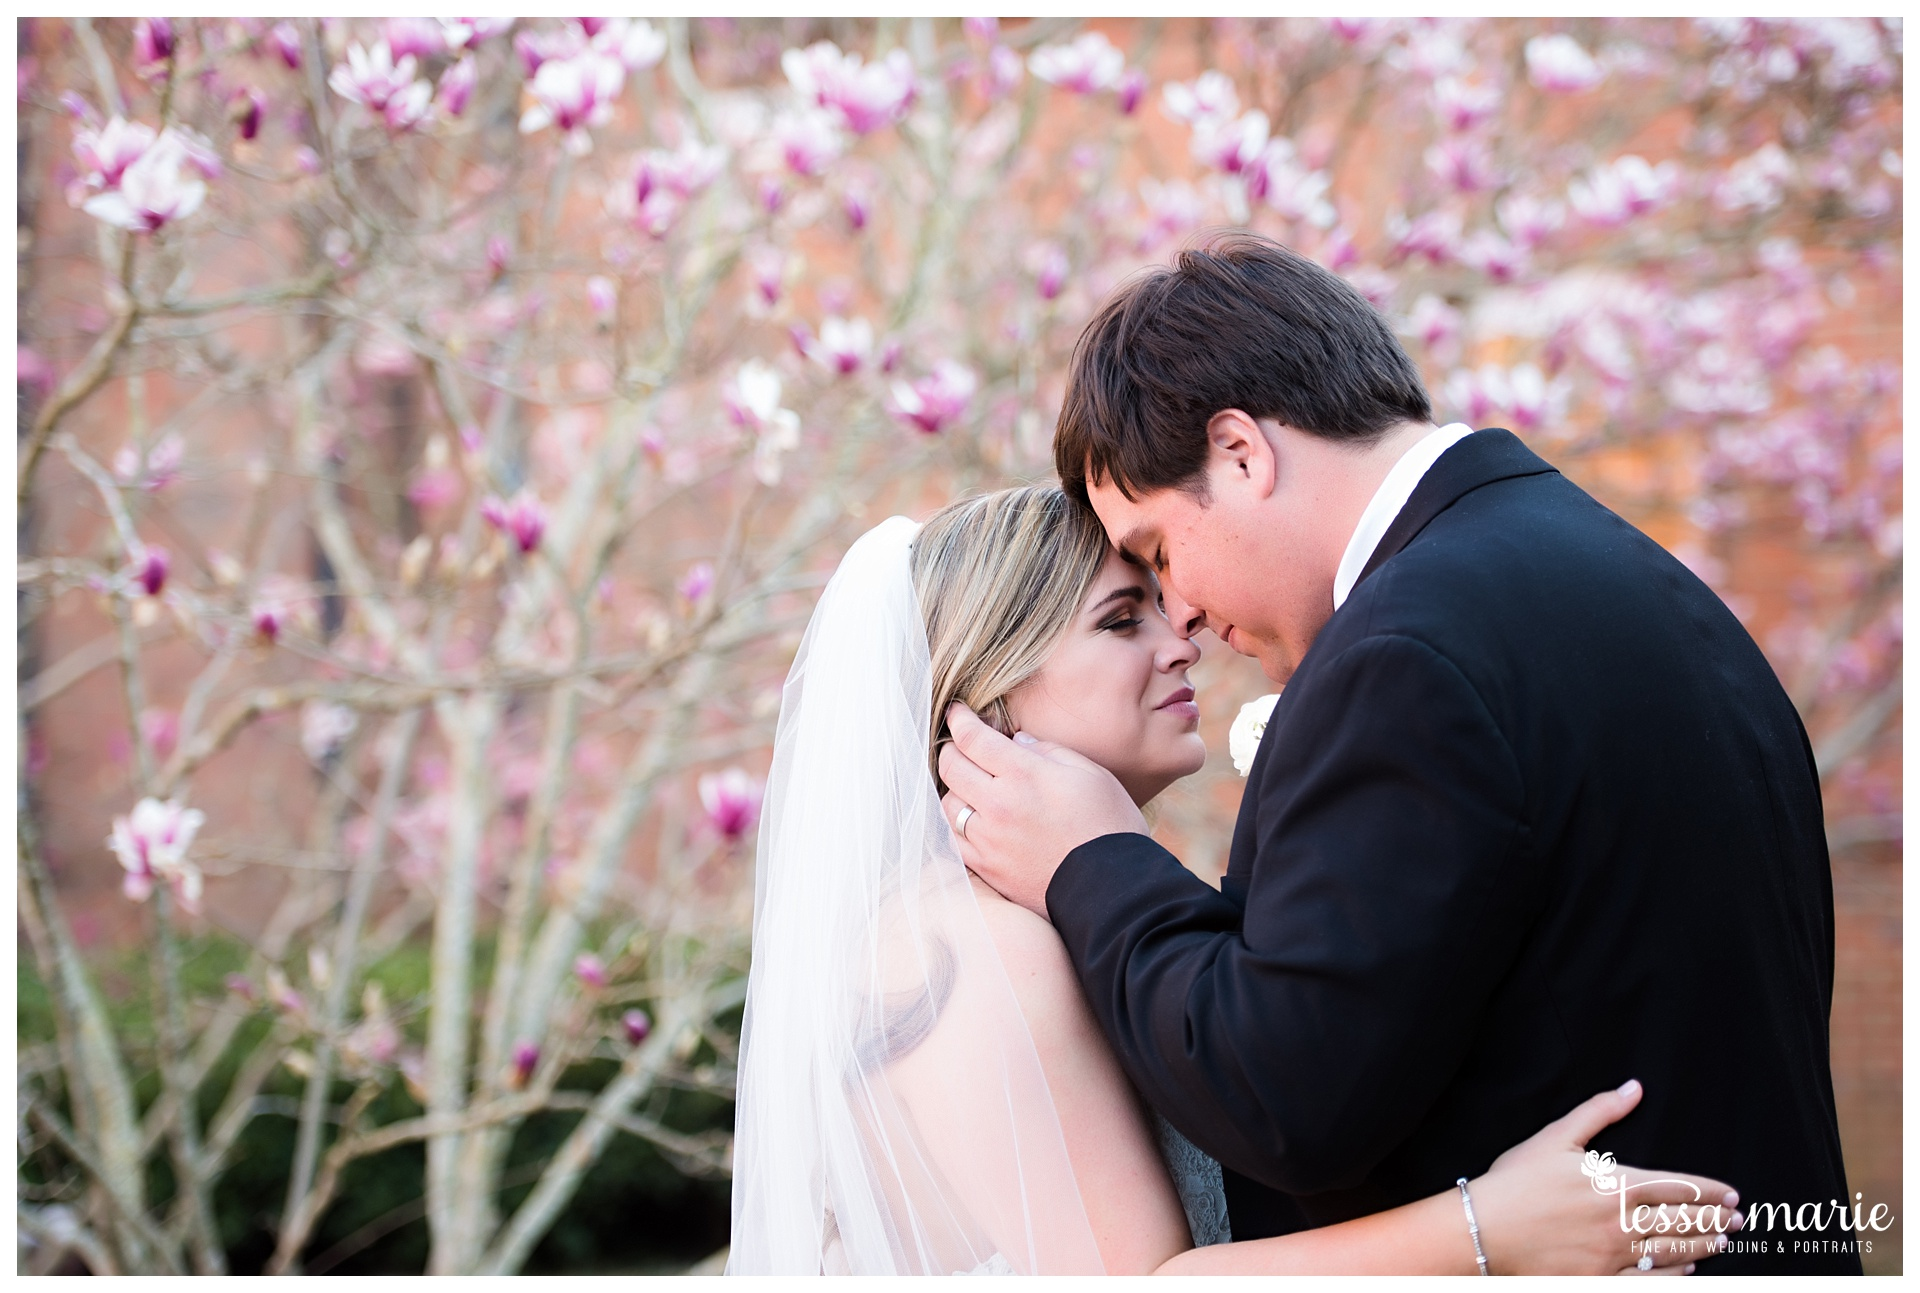 tessa_marie_weddings_legacy_story_focused_wedding_pictures_atlanta_wedding_photographer_0124